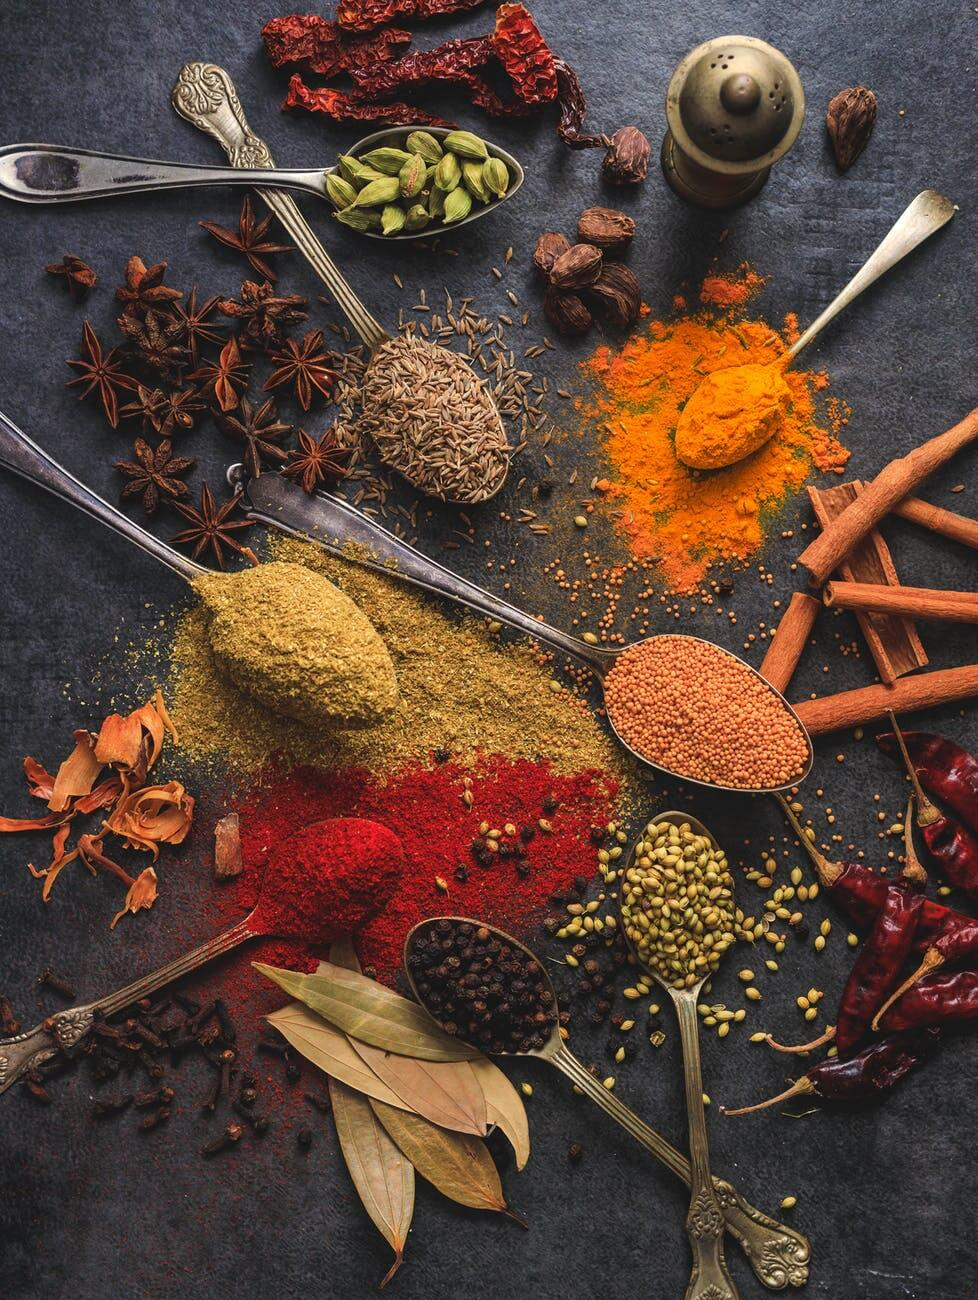 Discover new delicious spices from Southeast Asia.